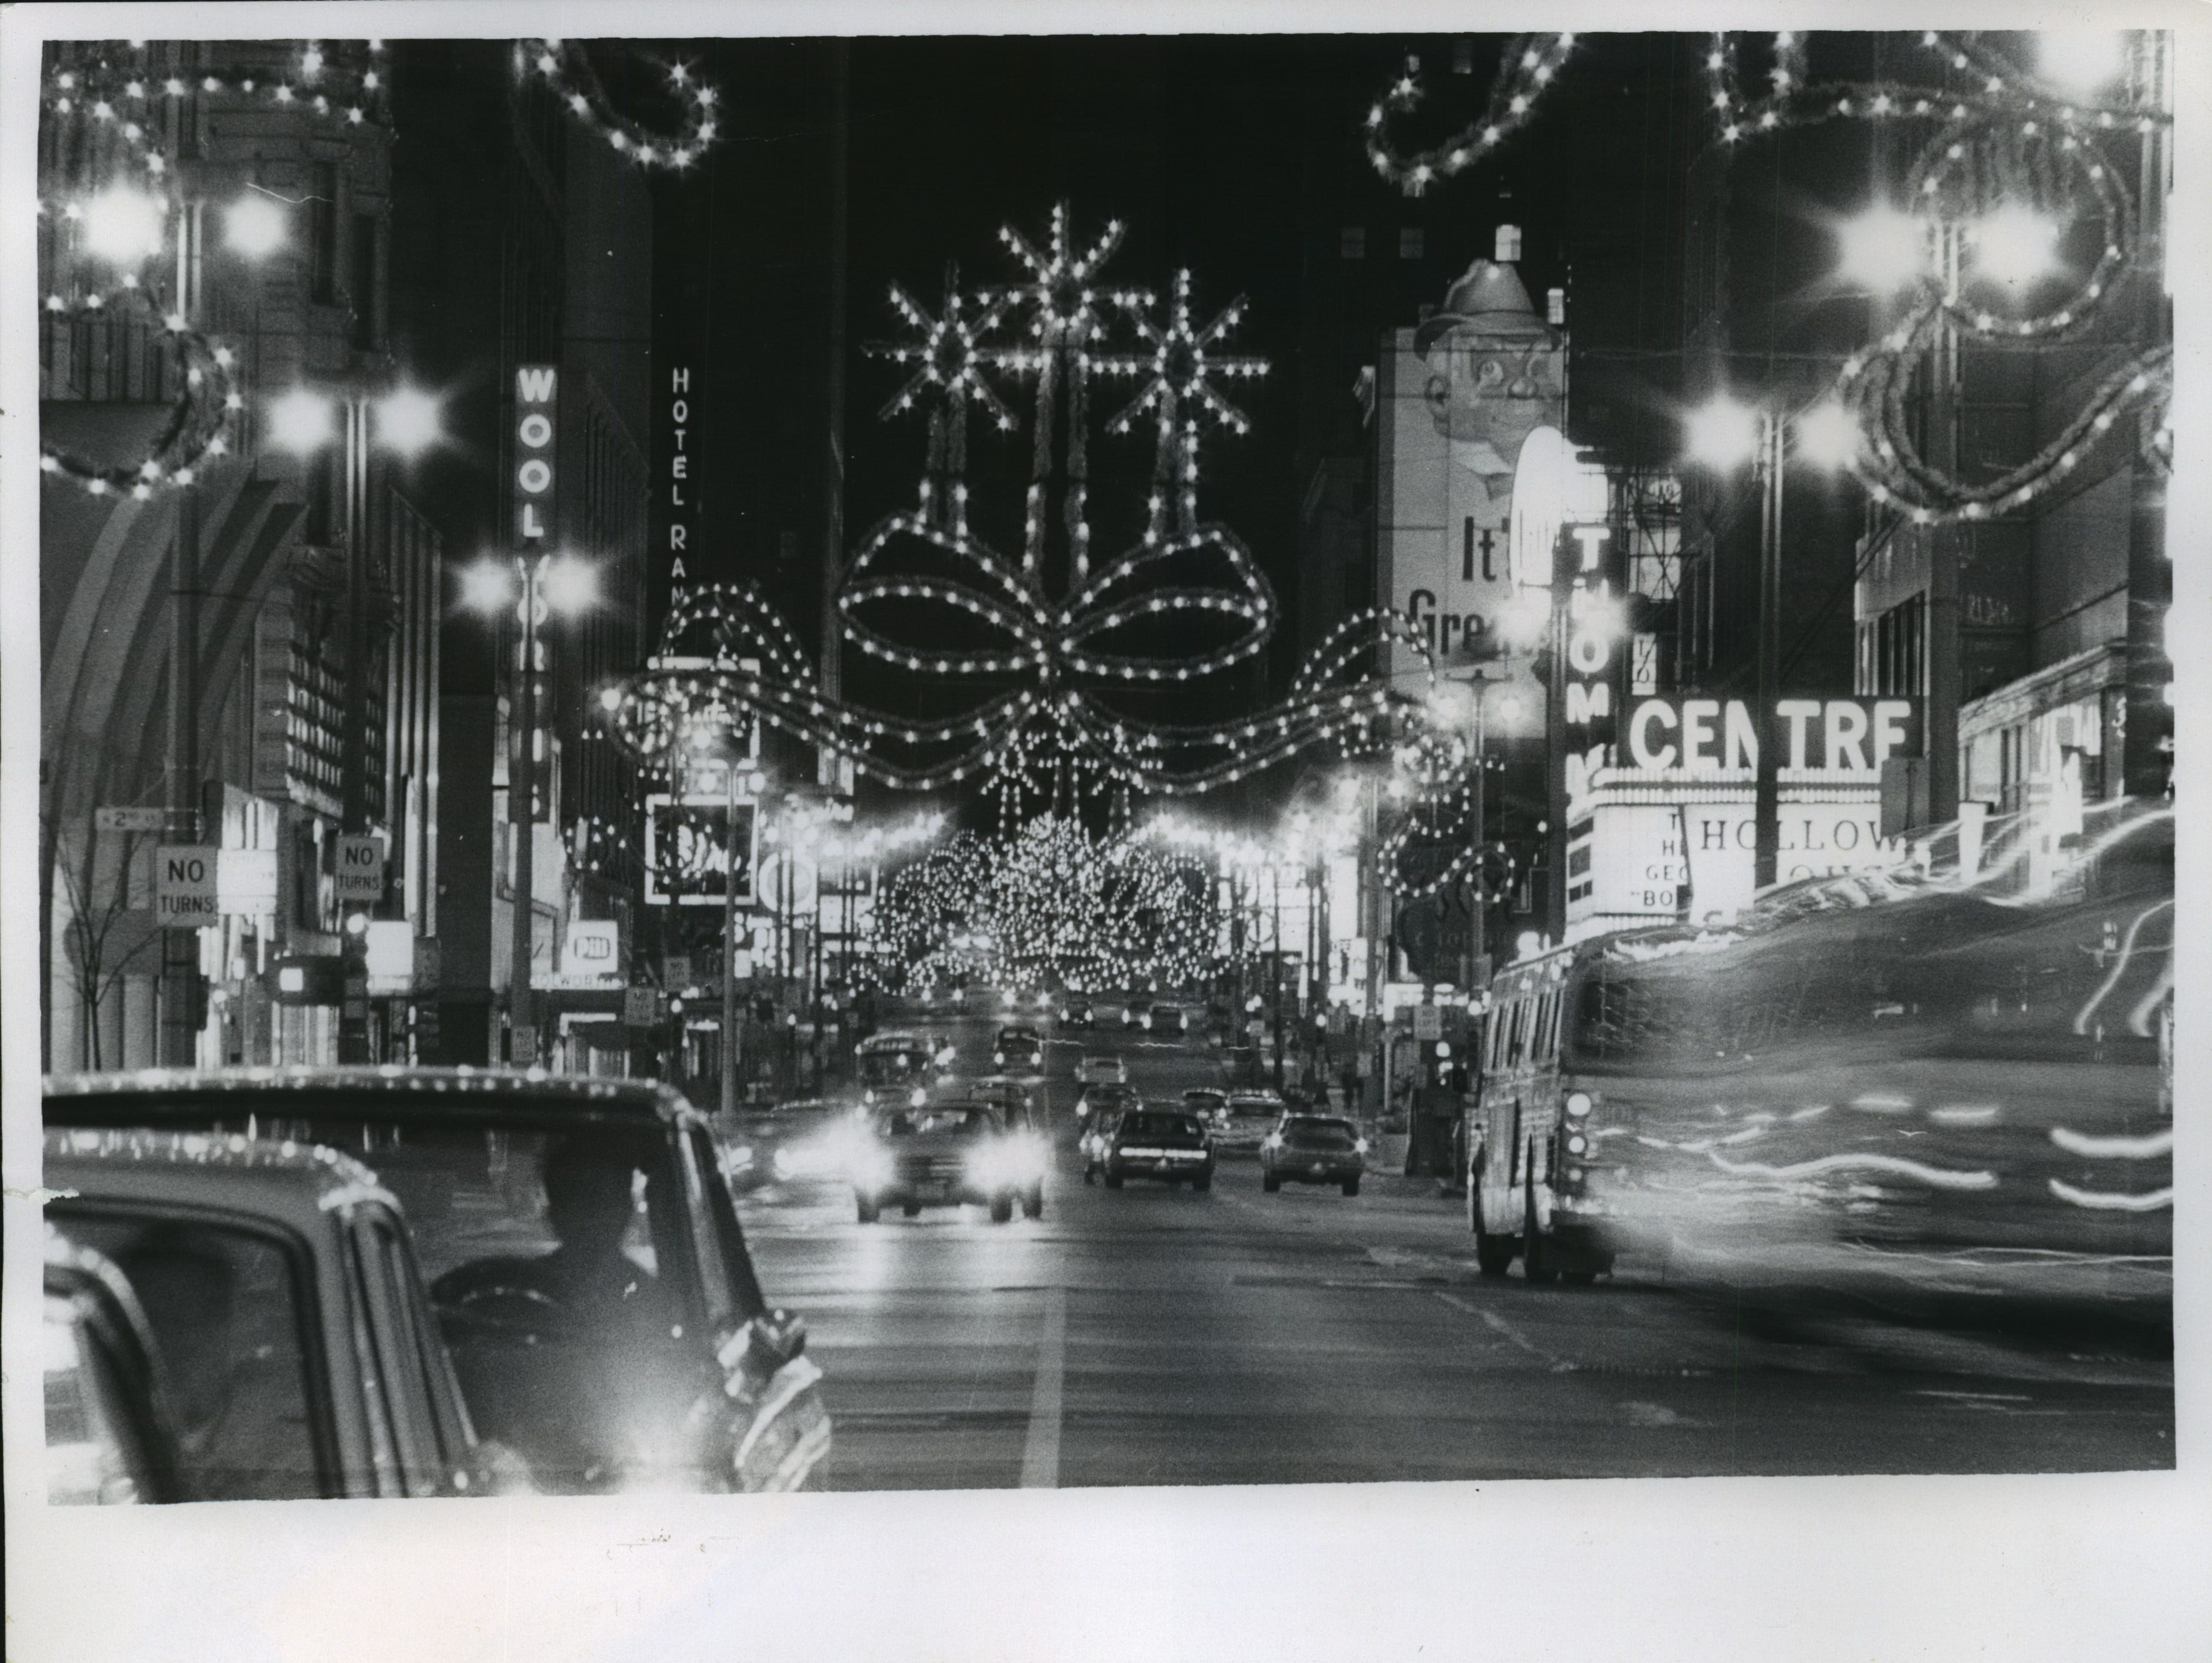 Wisconsin Avenue, seen looking west from Plankinton Avenue, blazes with holiday lights as crews test the displays' circuits on Nov. 19, 1968. The annual downtown Christmas lighting ceremony, sponsored by the Downtown Associaton of Milwaukee, was scheduled for Nov. 22 that year. This photo was published on the front page of the Nov. 20, 1968, Milwaukee Sentinel.